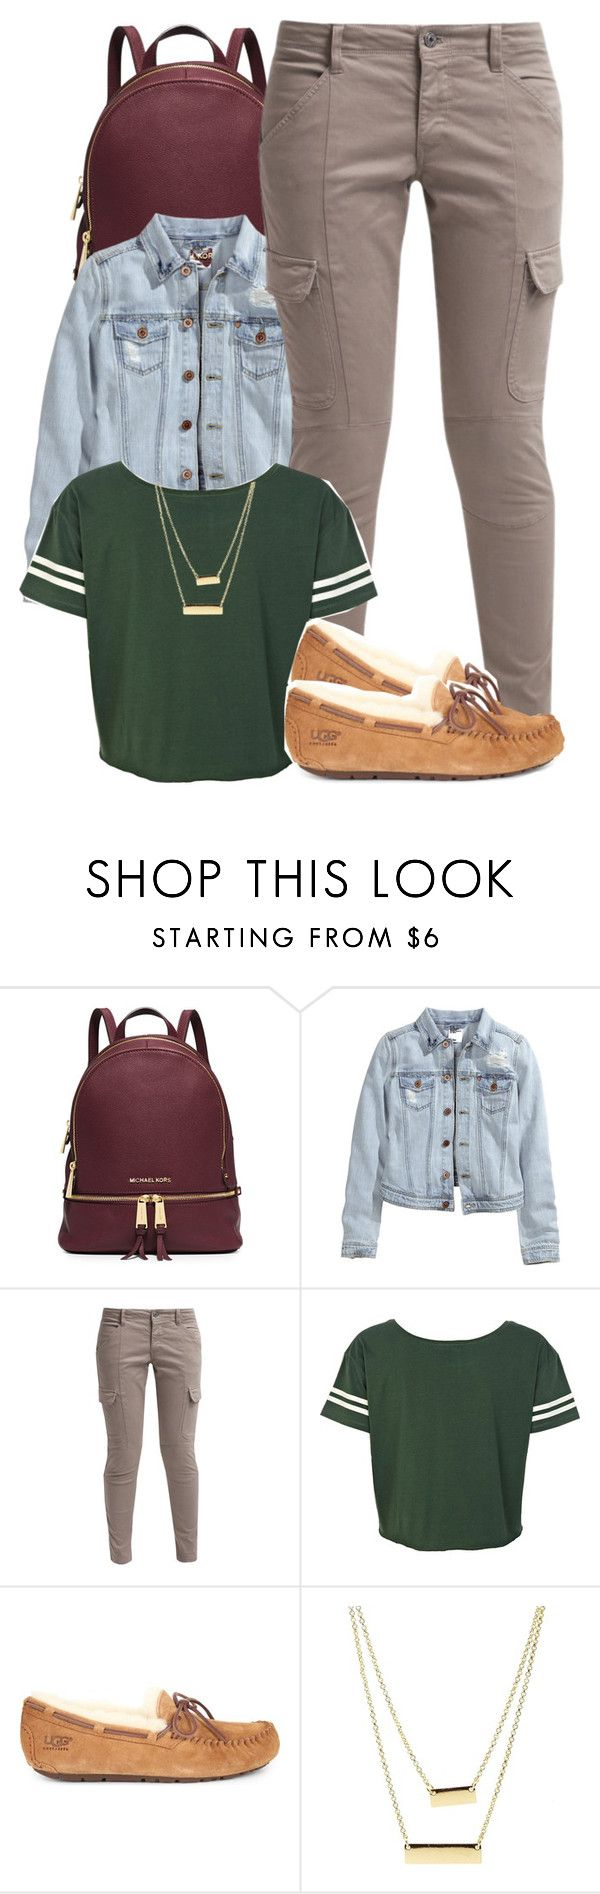 """"" by trinsowavy ❤ liked on Polyvore featuring MICHAEL Michael Kors, H&M, School Rag, River Island, UGG Australia and Charlotte Russe"